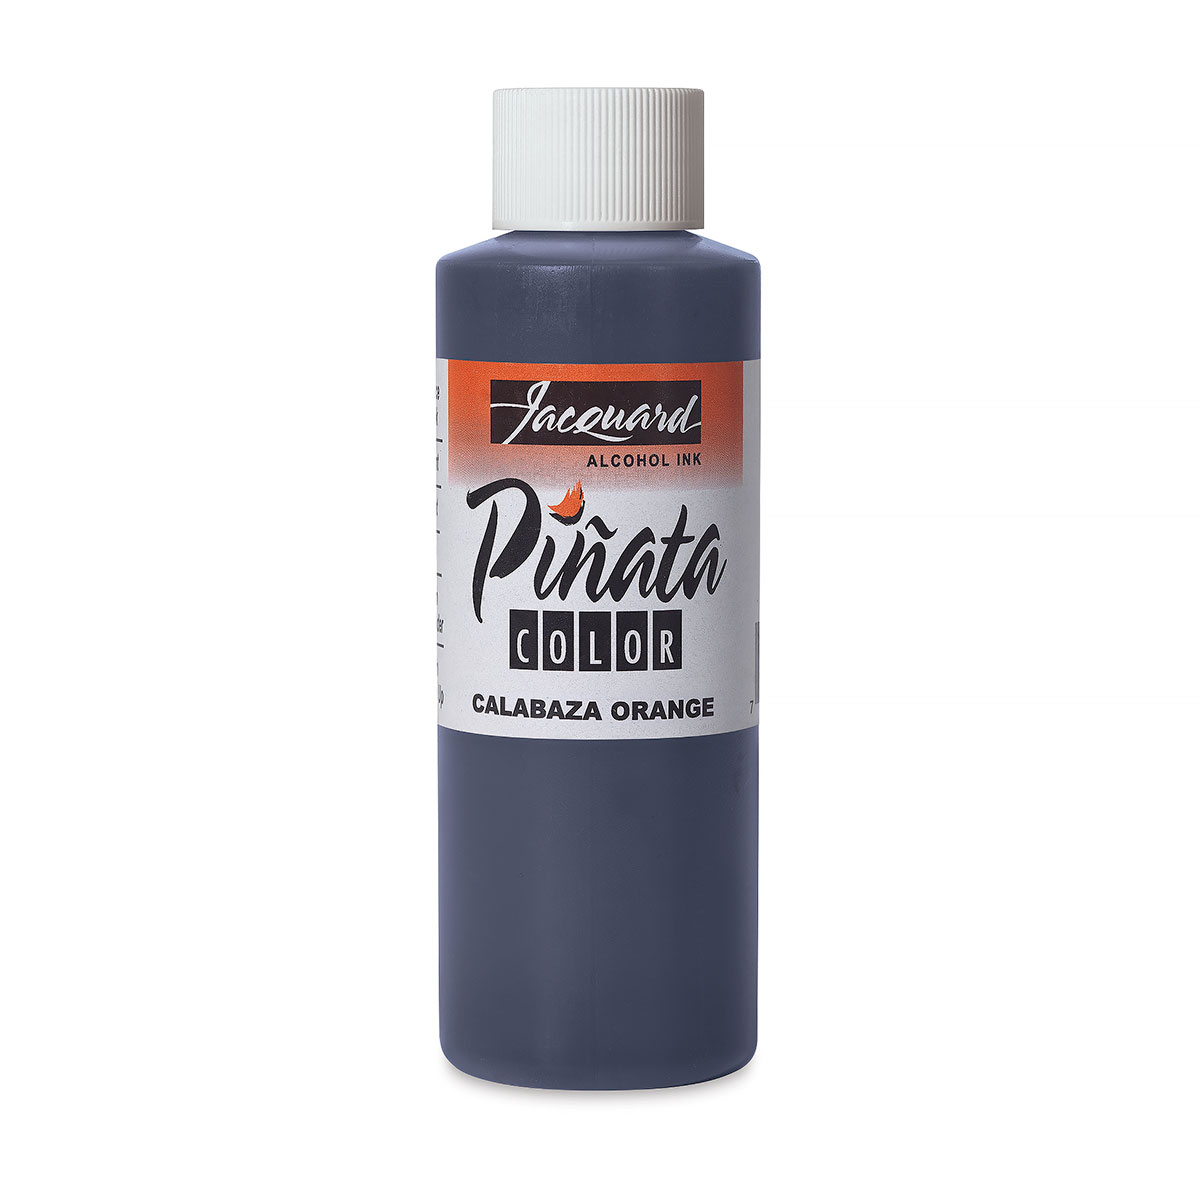 Jacquard Products AcidFree Pinata color Exciter Pack Ink 0.5 oz Assorted